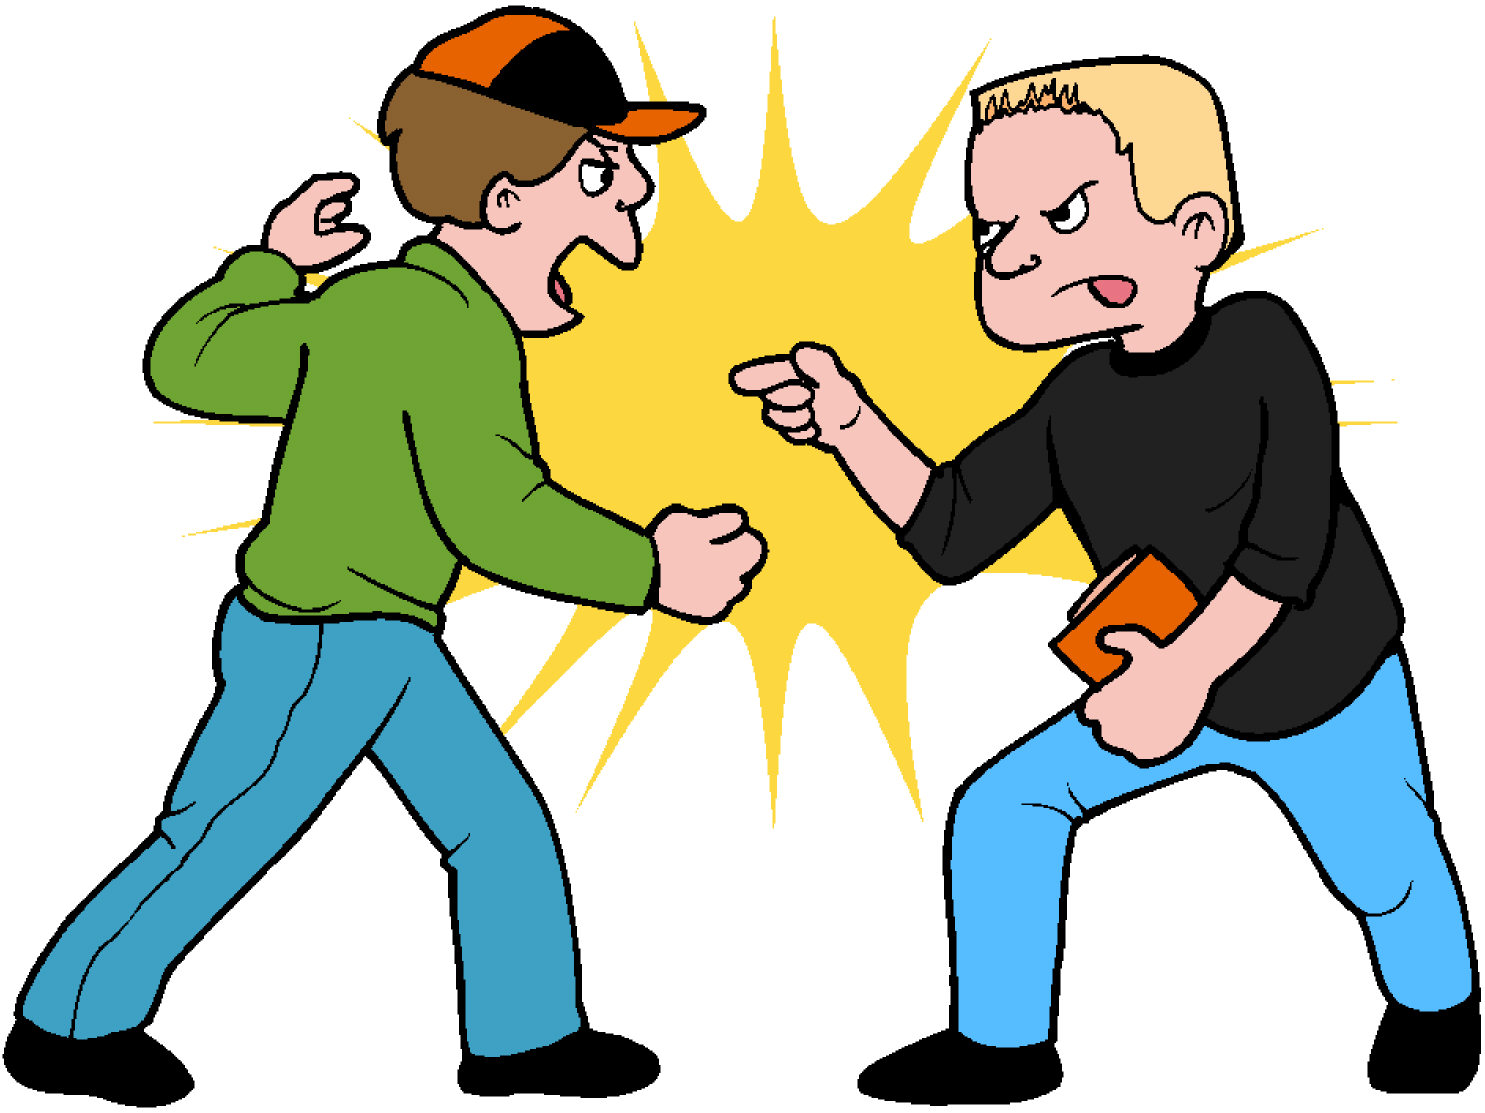 the young men assaulted the bank manager